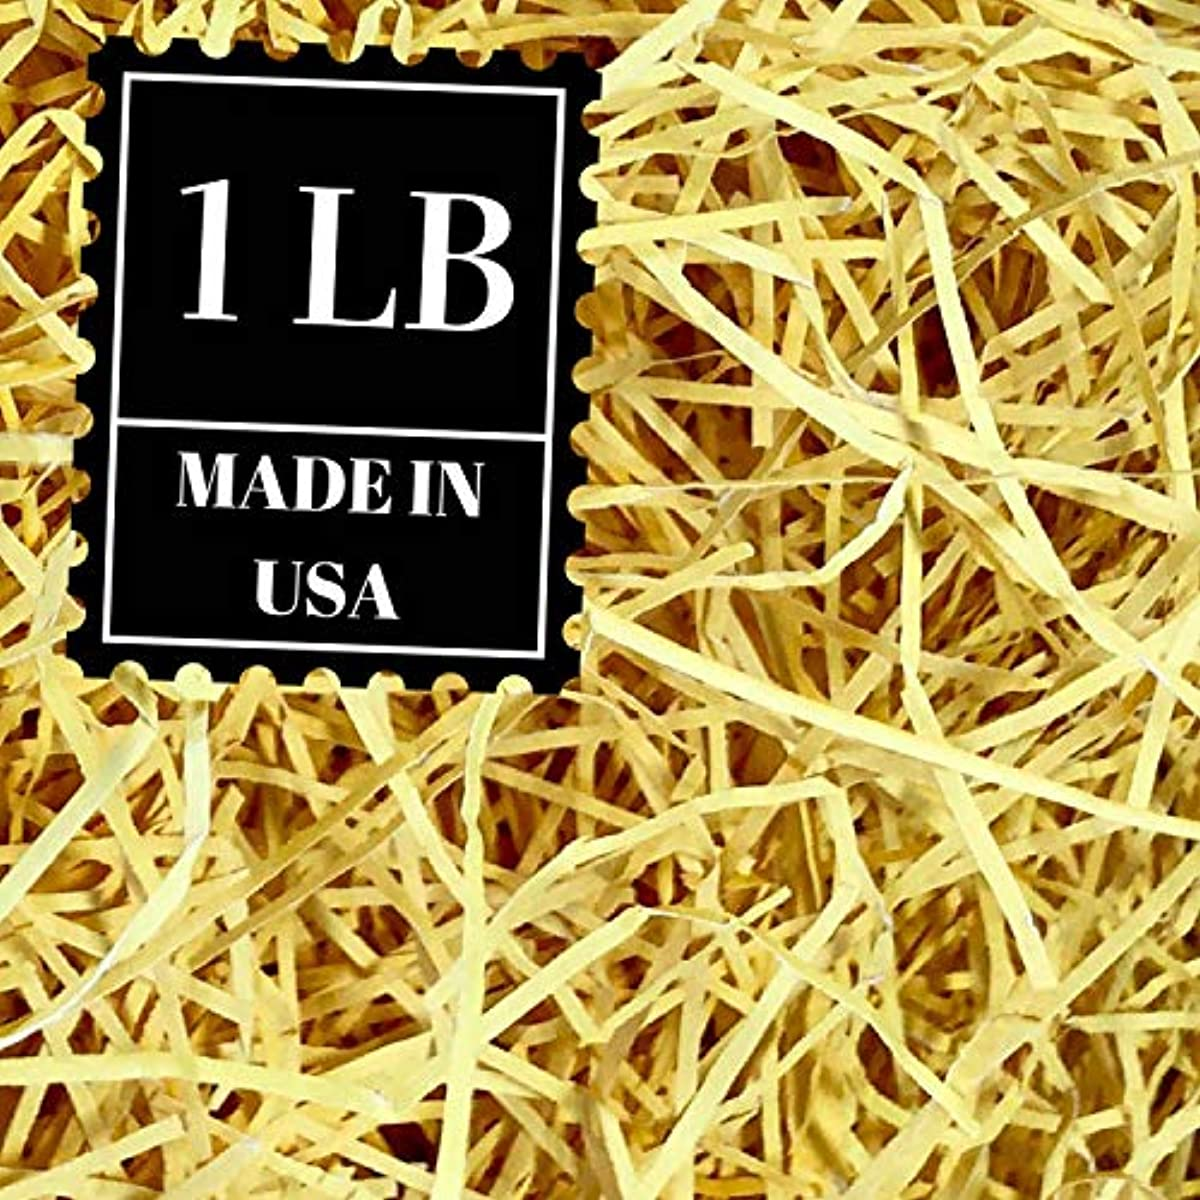 Shredded Paper Gift Basket Filler - Natural Packing Shreds for Crafts, Boxes and Bags, Recycled Decorative Stuffing Material, Raffia Confetti Easter Grass Fill by Mrs Fizz (Yellow, 1 LB)